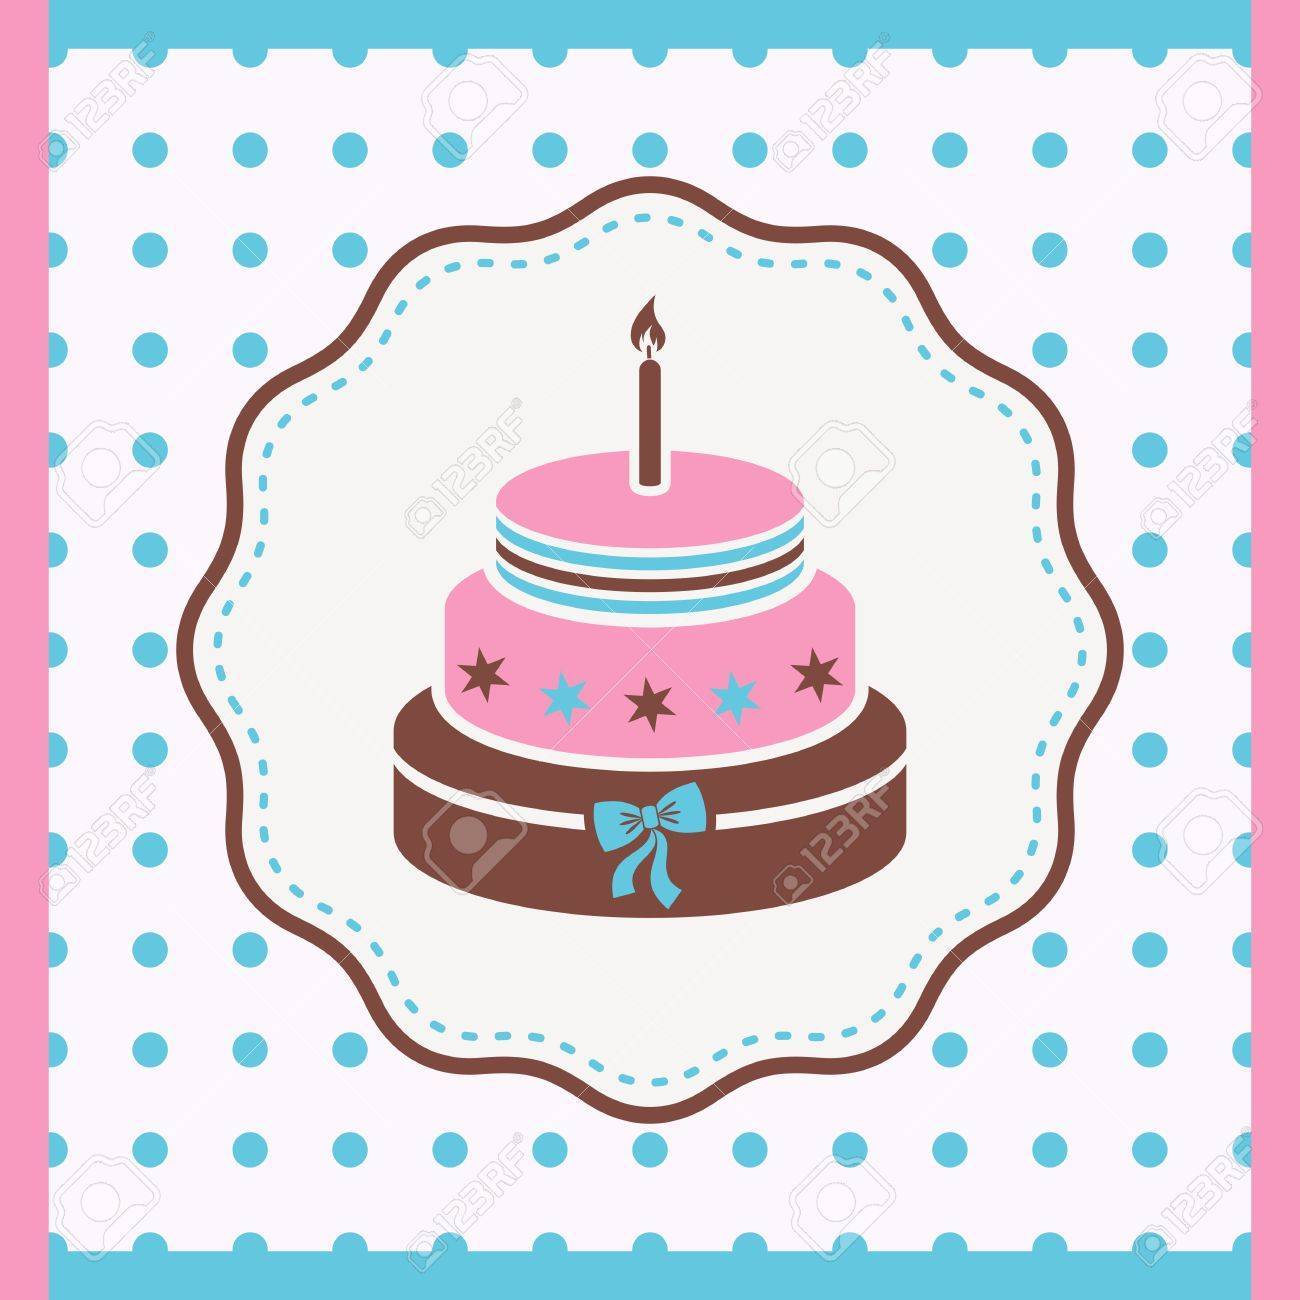 Vintage Card With Birthday Cake With One Candle Royalty Free